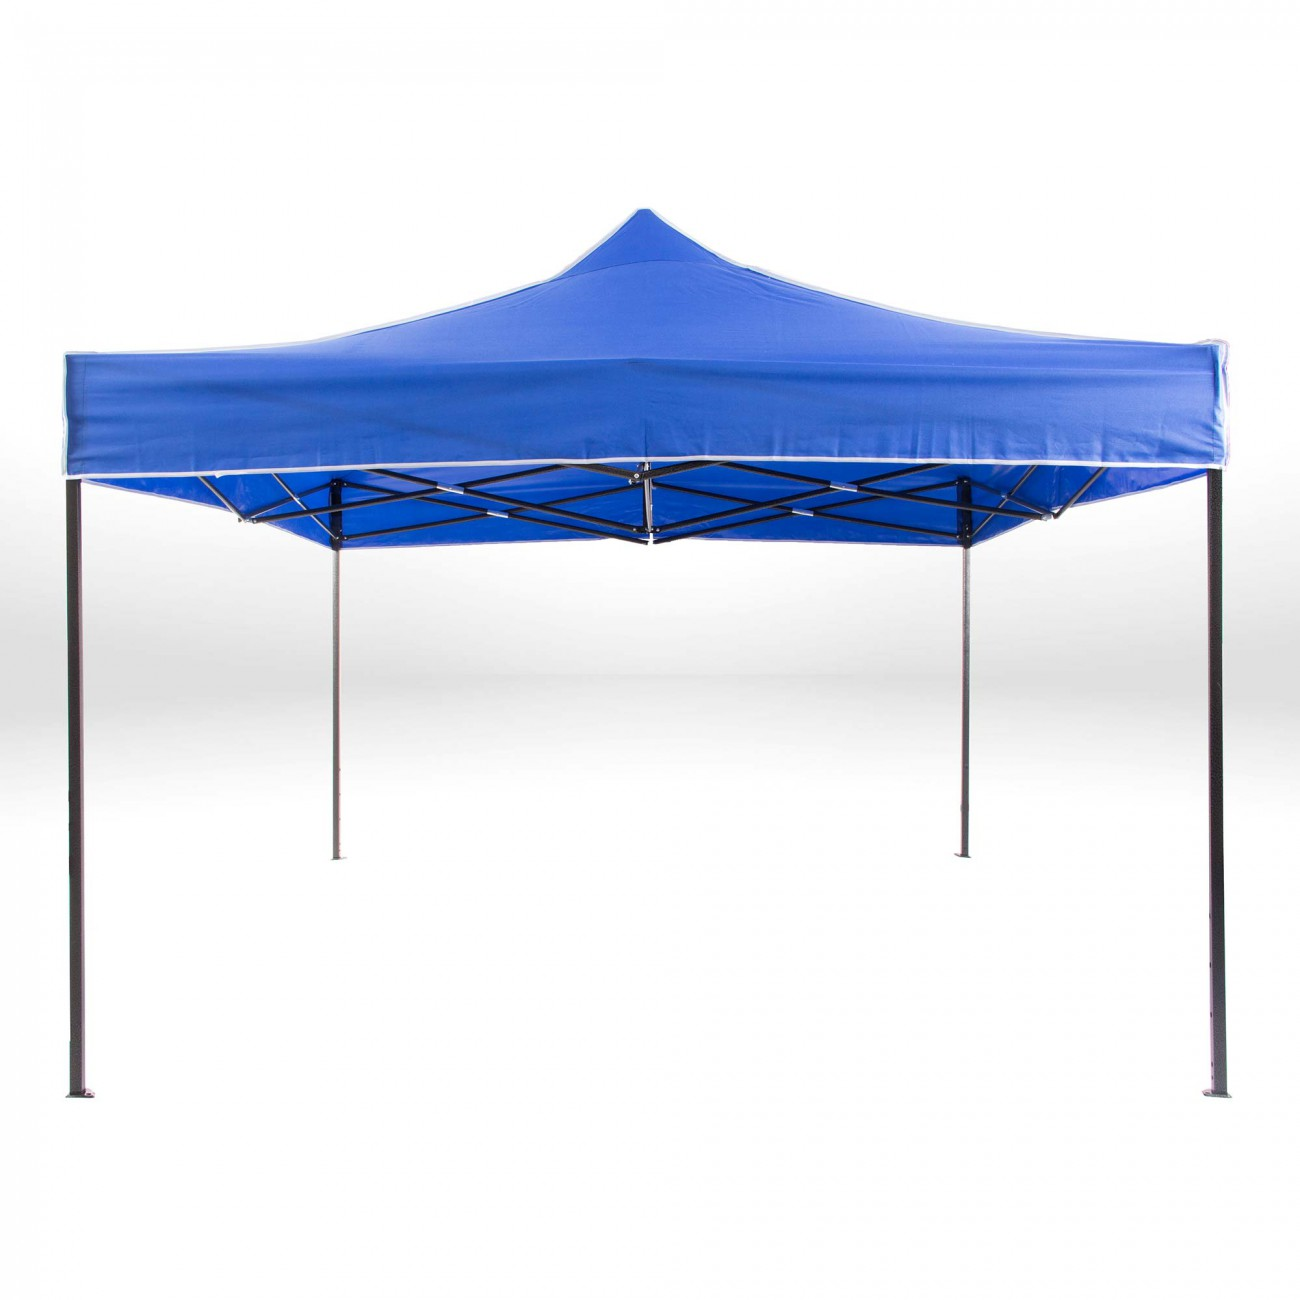 Strattore Foldable Gazebo With Canopy Garden Tent 3 0